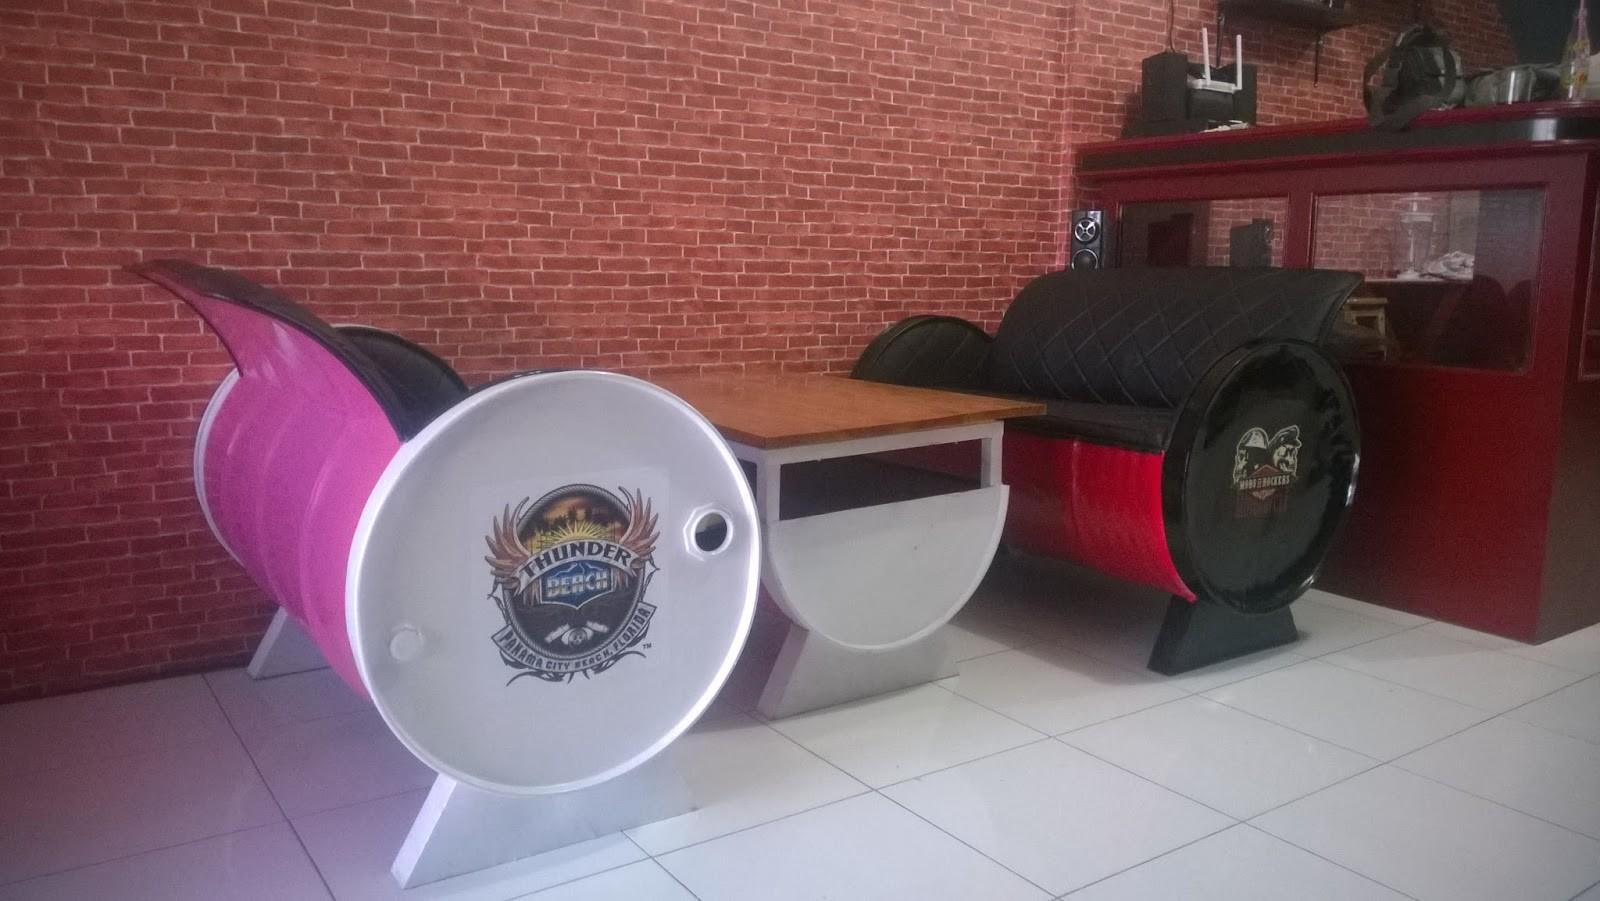 Galeri Umah Tong Upcycled Oil Drum Into Furniture